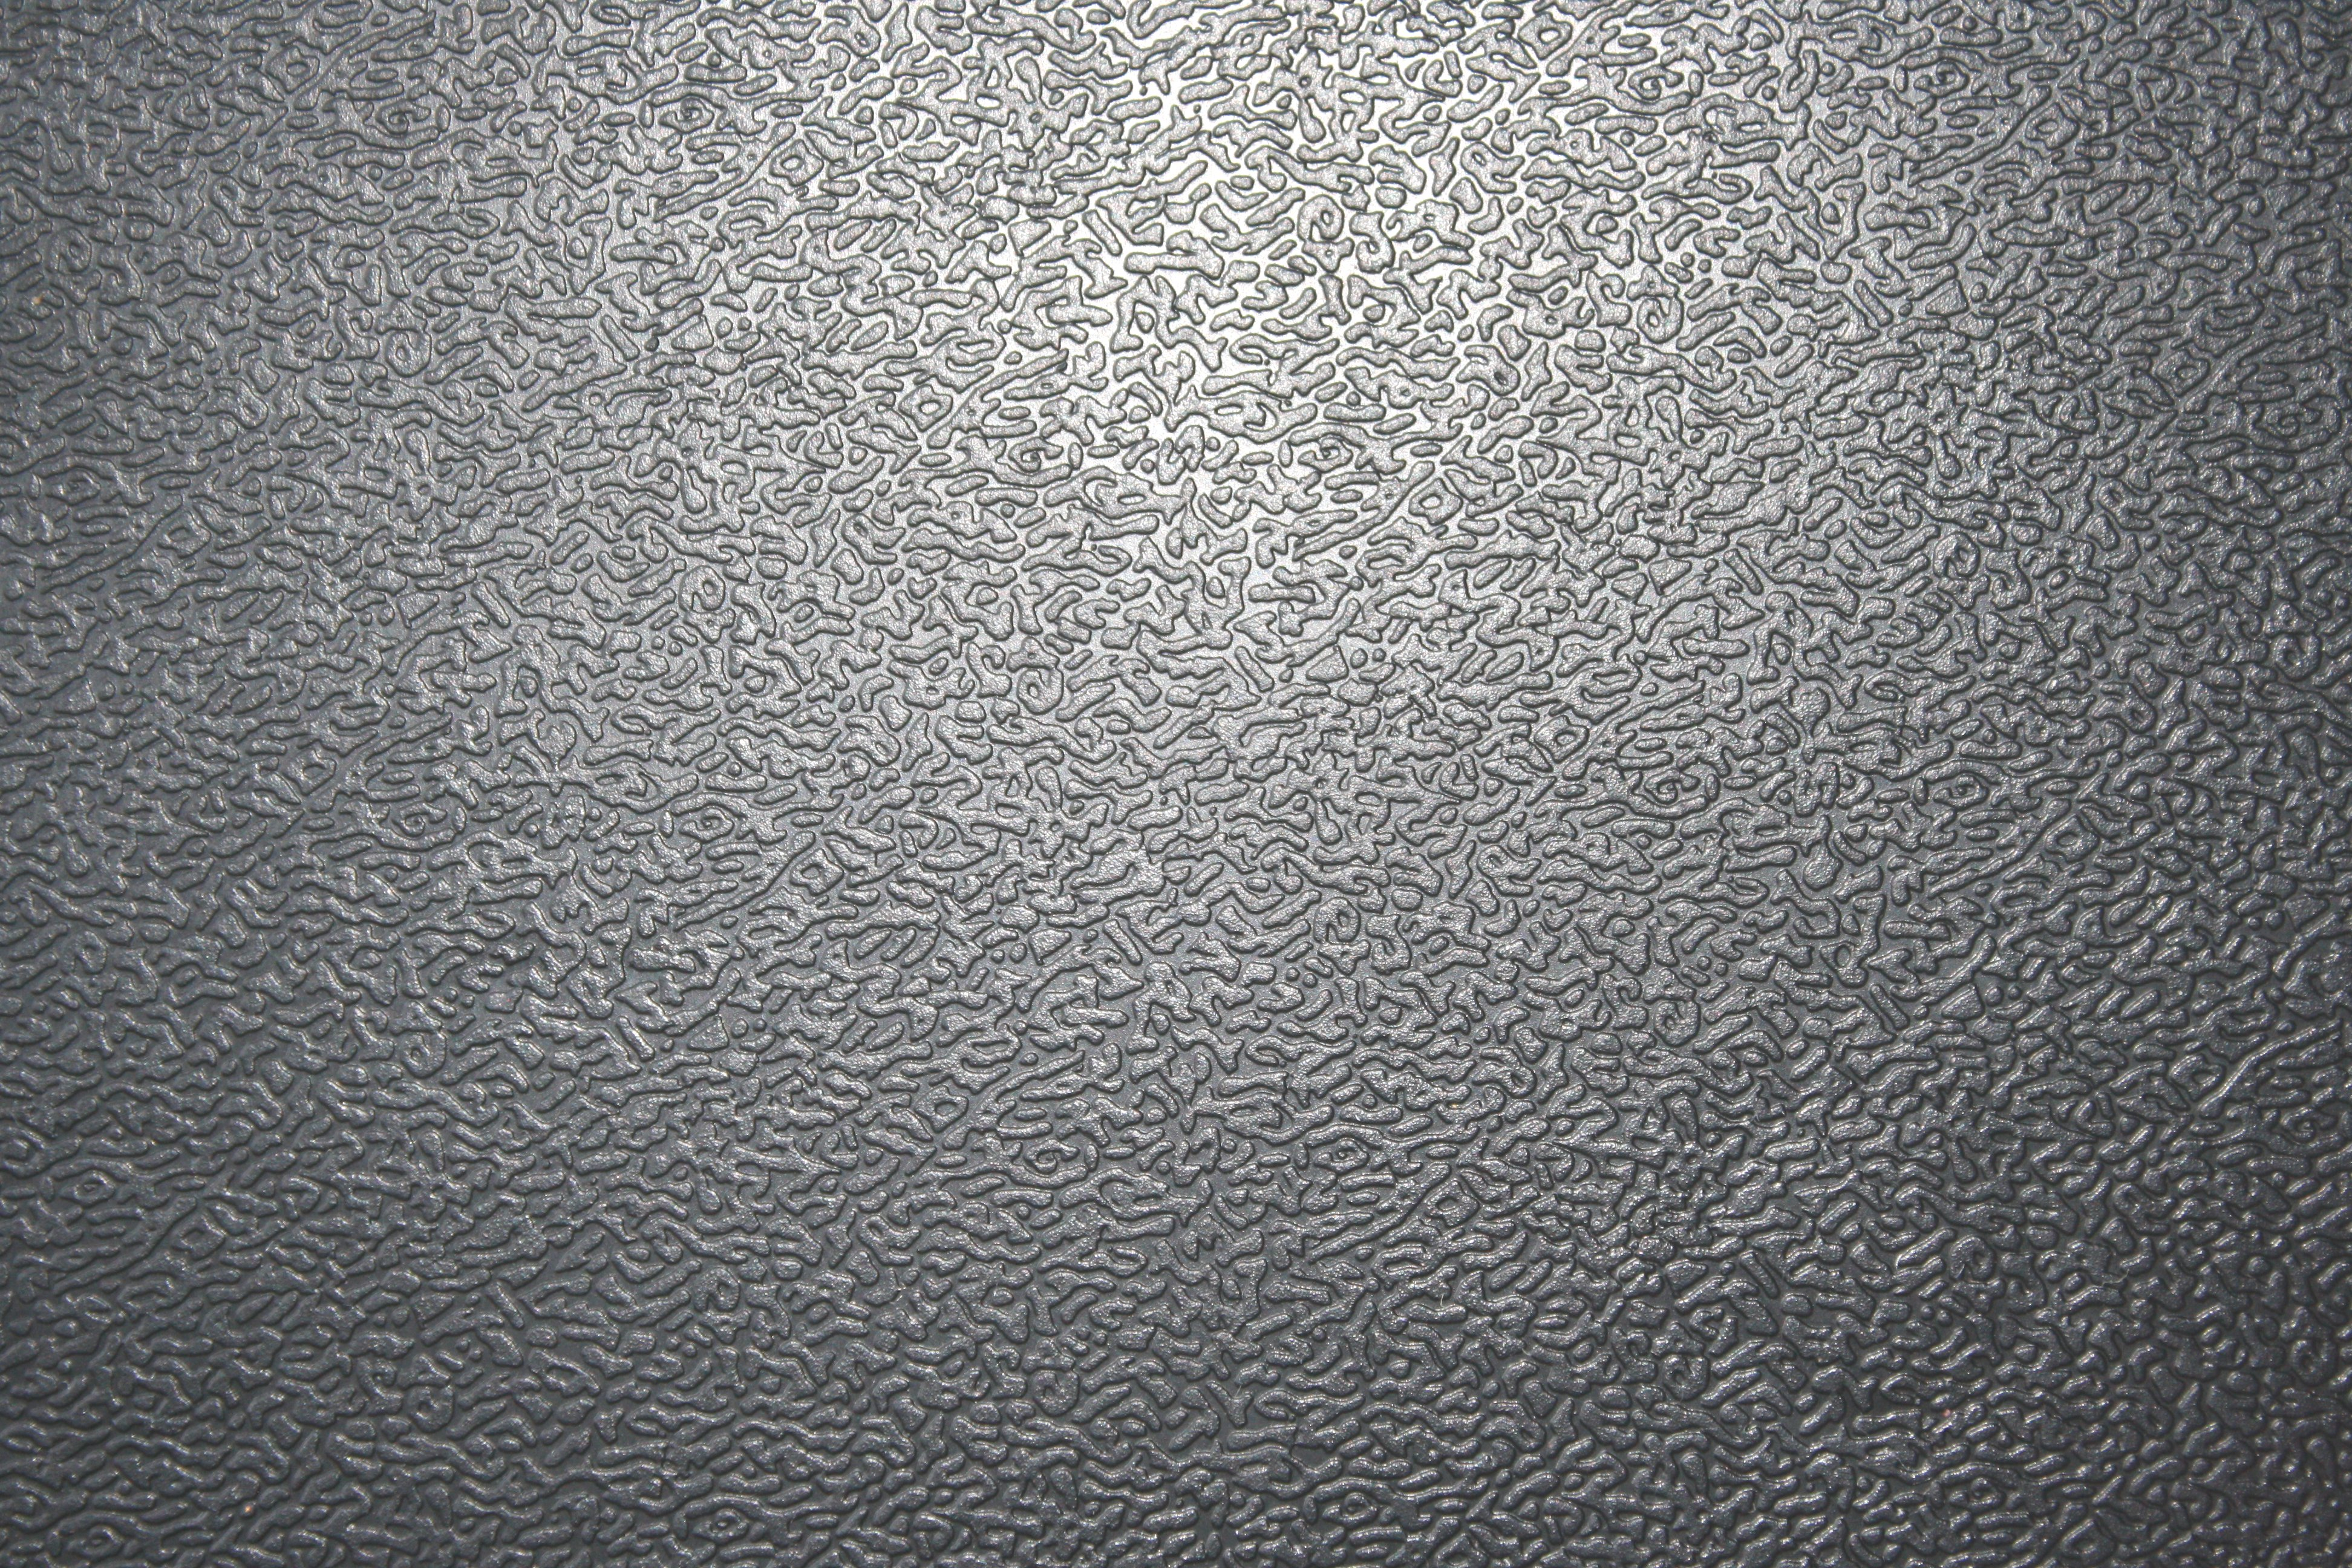 Selecting grey color for background and wallpaper is very good choice 3888x2592